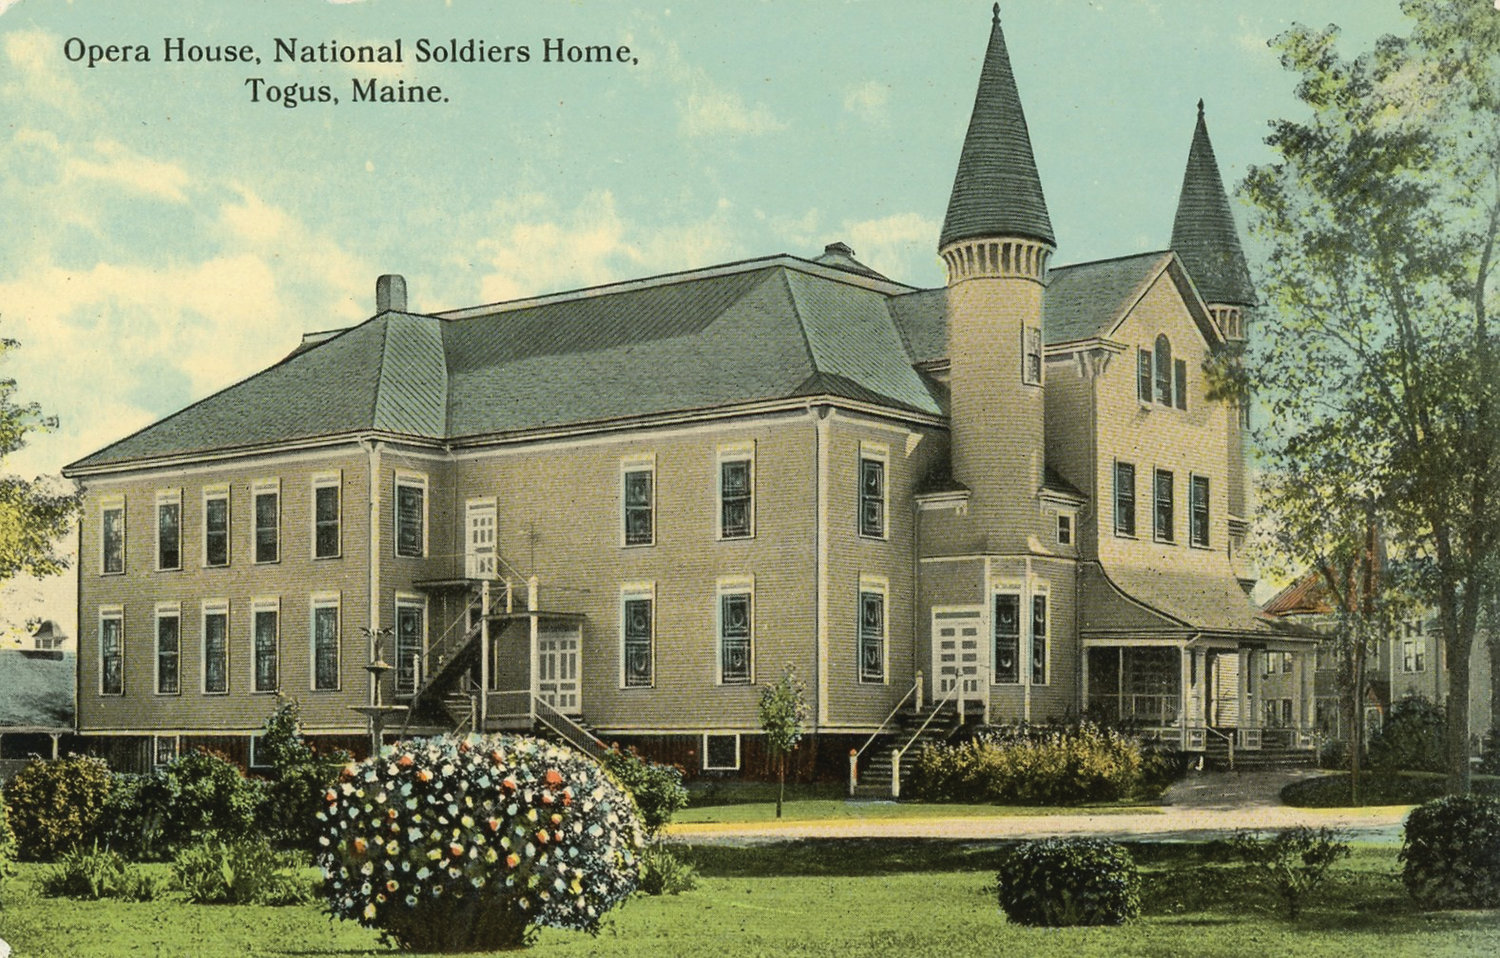 HISTORIC SITE: The Eastern branch of the National Home for Disabled Volunteer Soldiers – a former hotel in Togus, Maine – was created by the federal government following the Civil War in the mid 1860s.